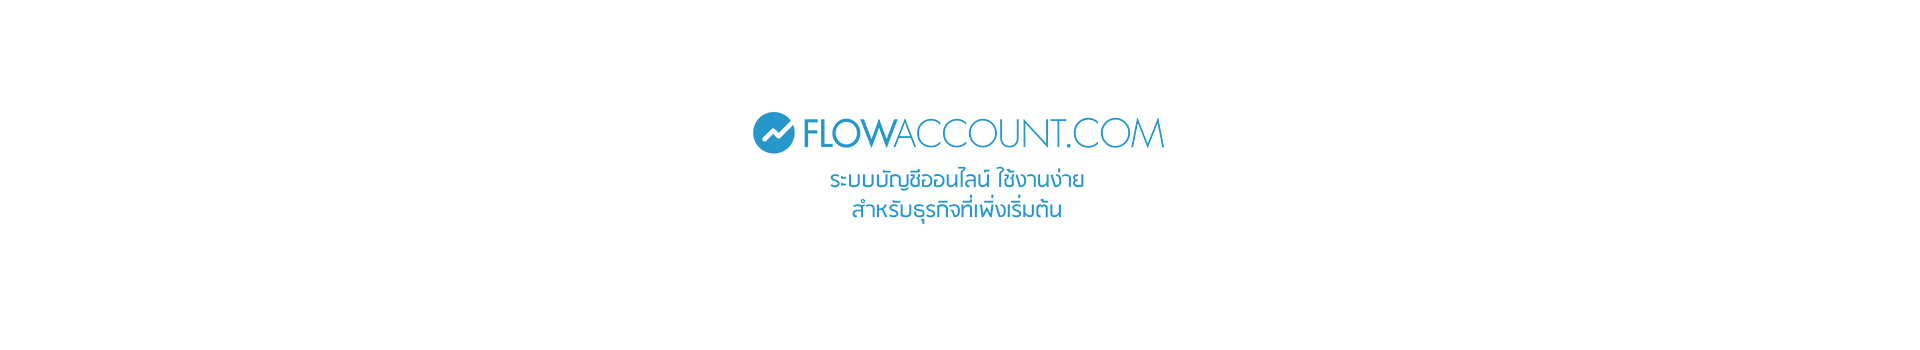 FlowAccount  cover photo